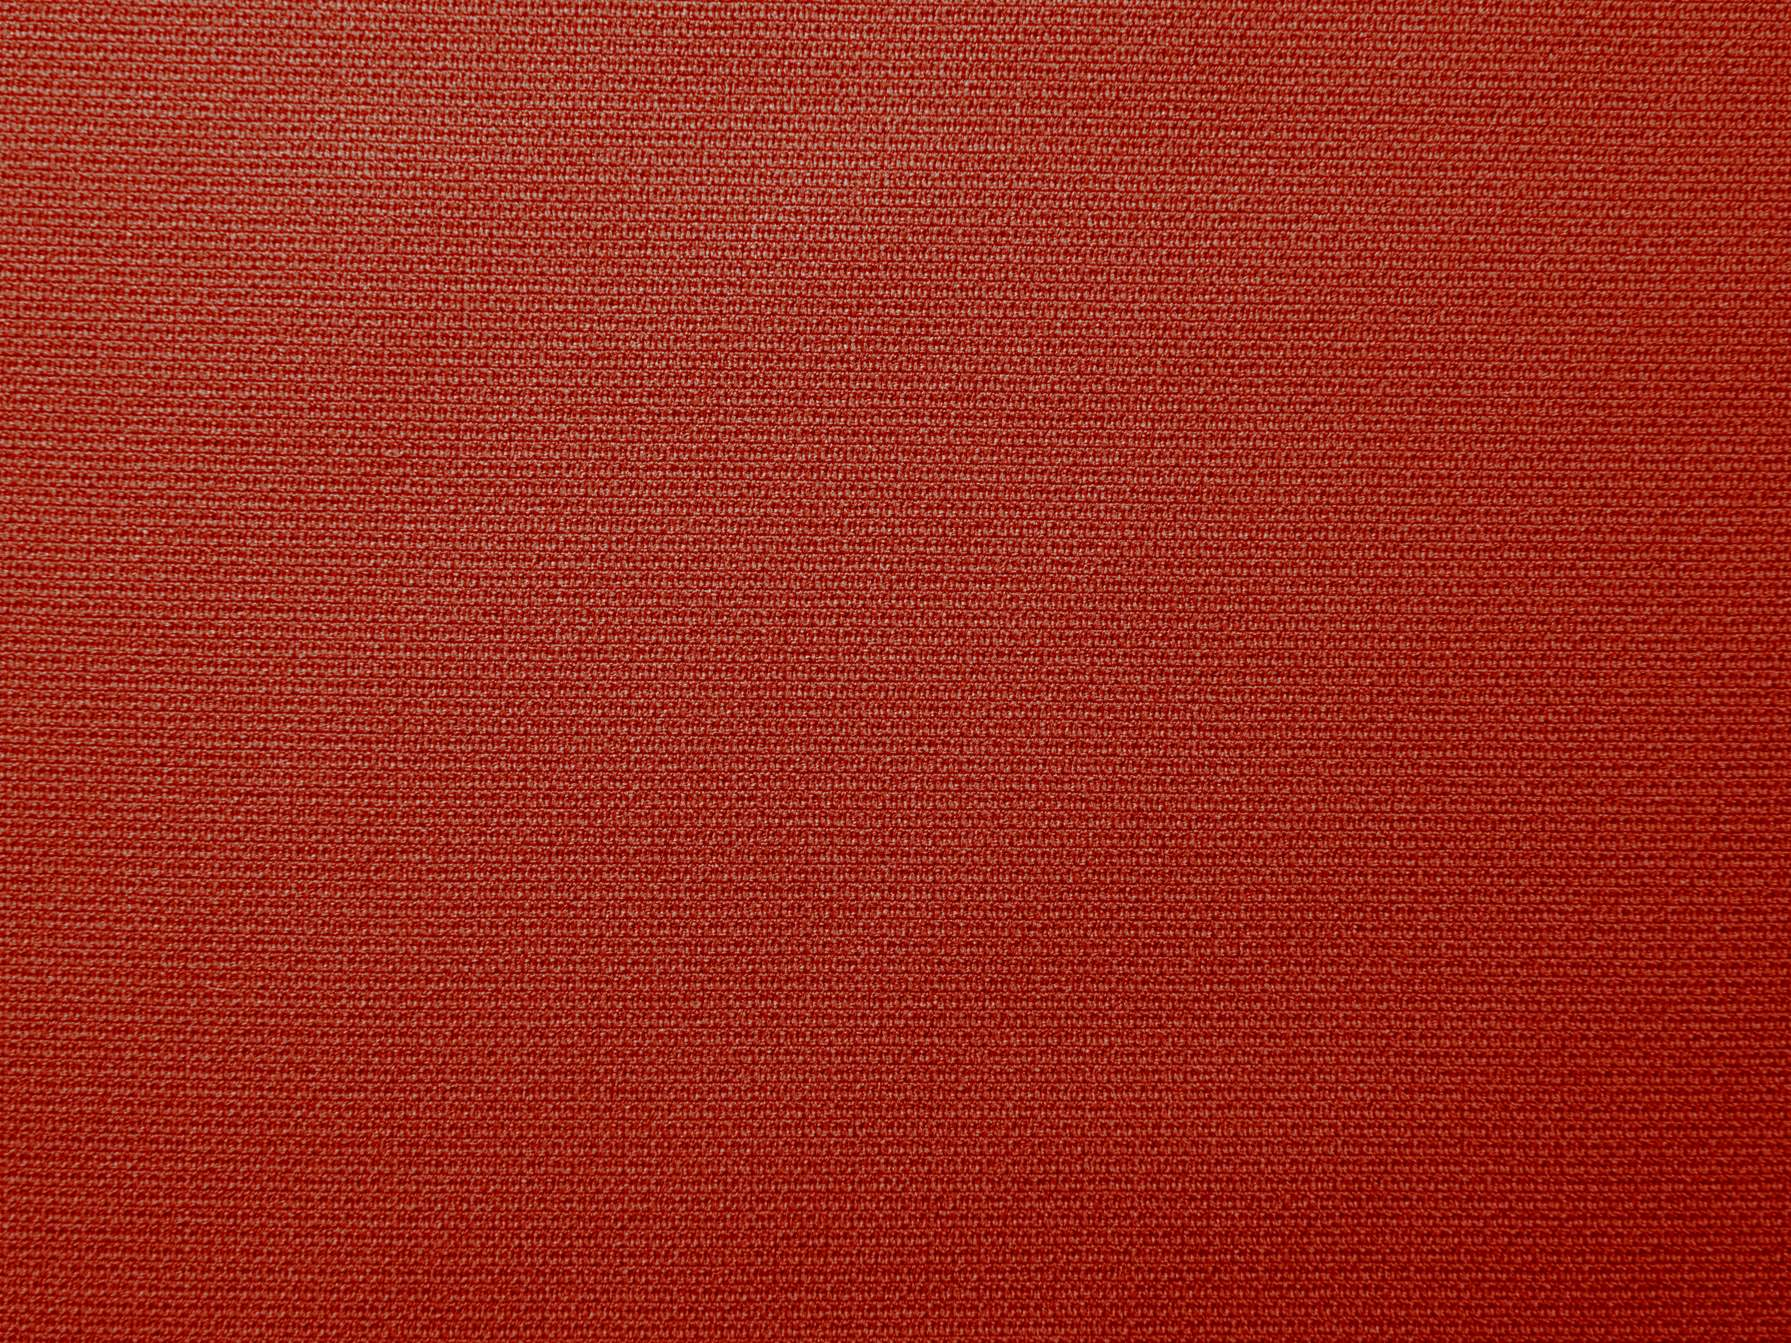 Good Color Clean Red Fabric Texture Photohdx